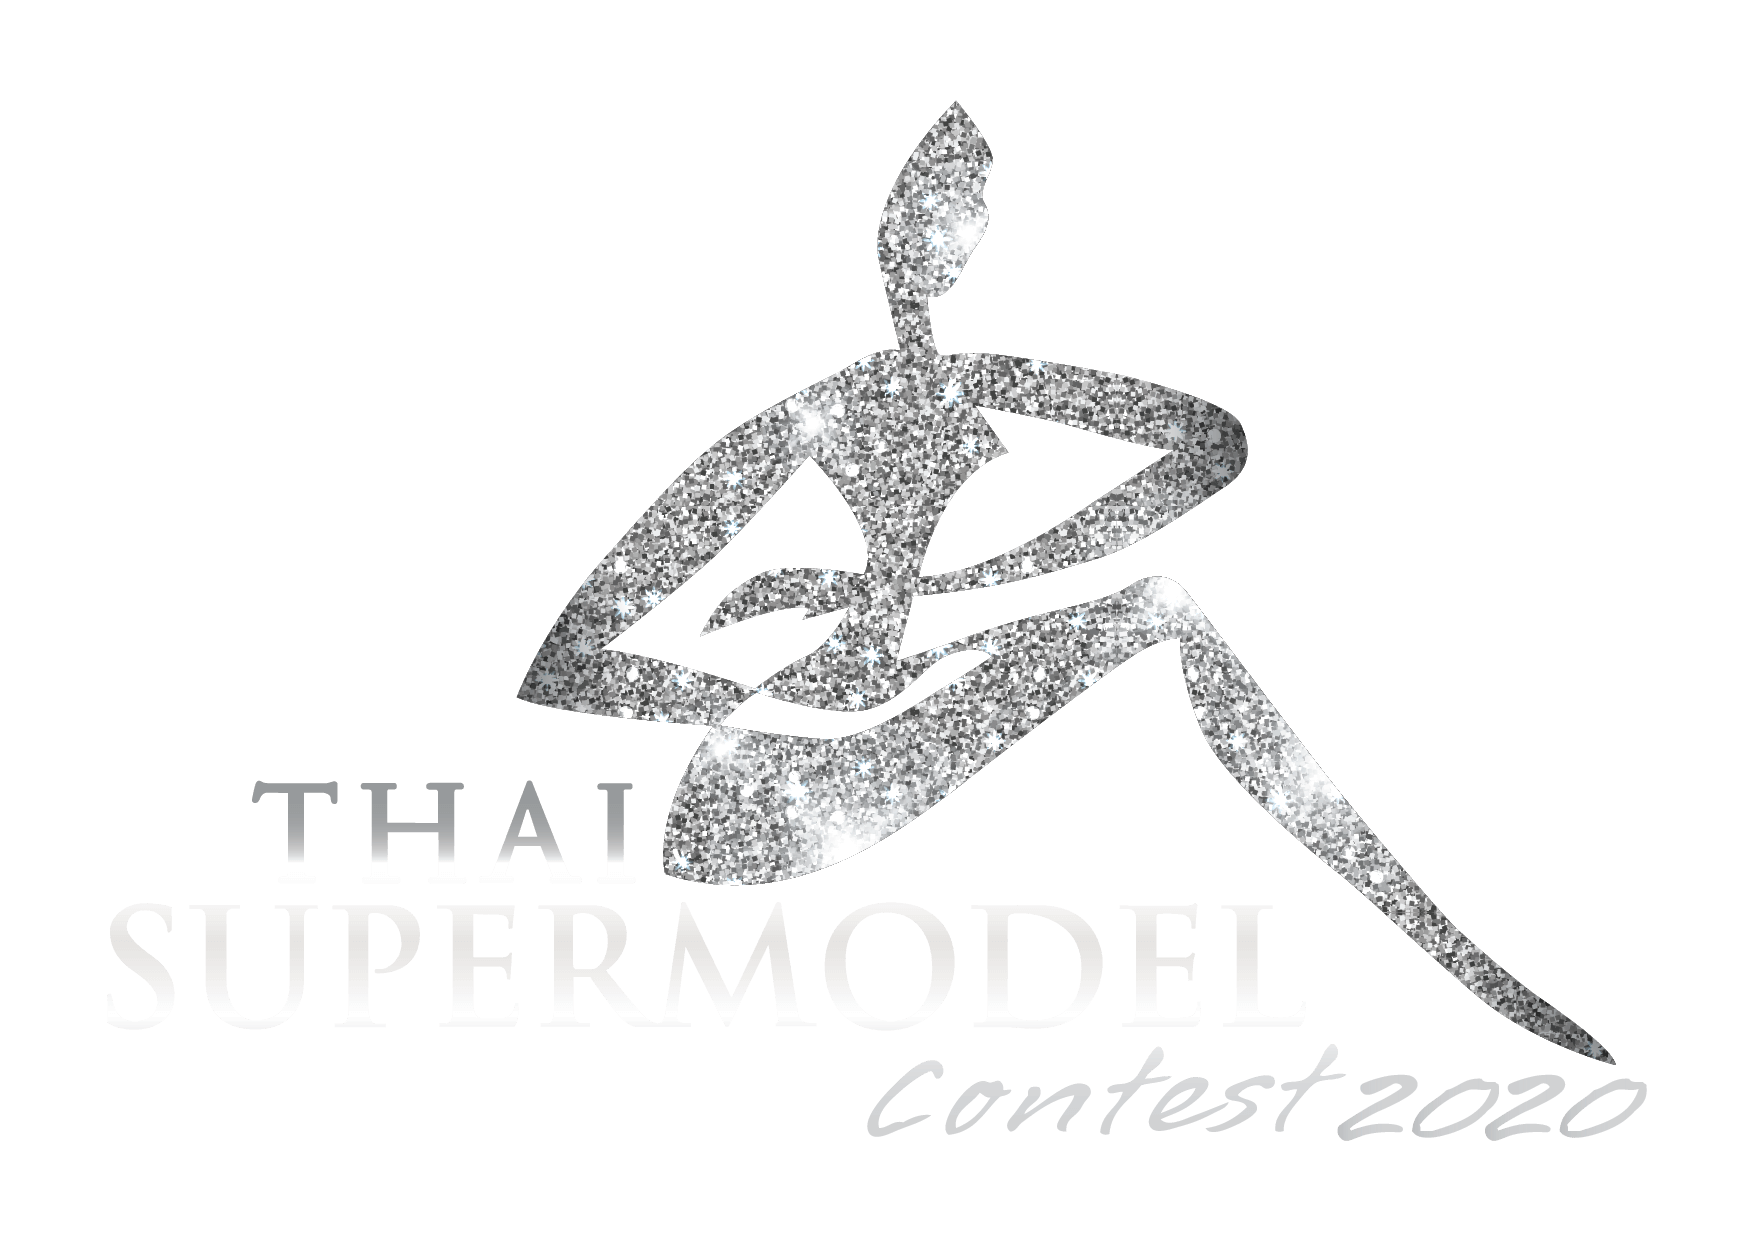 Thai Supermodel Contest 2020